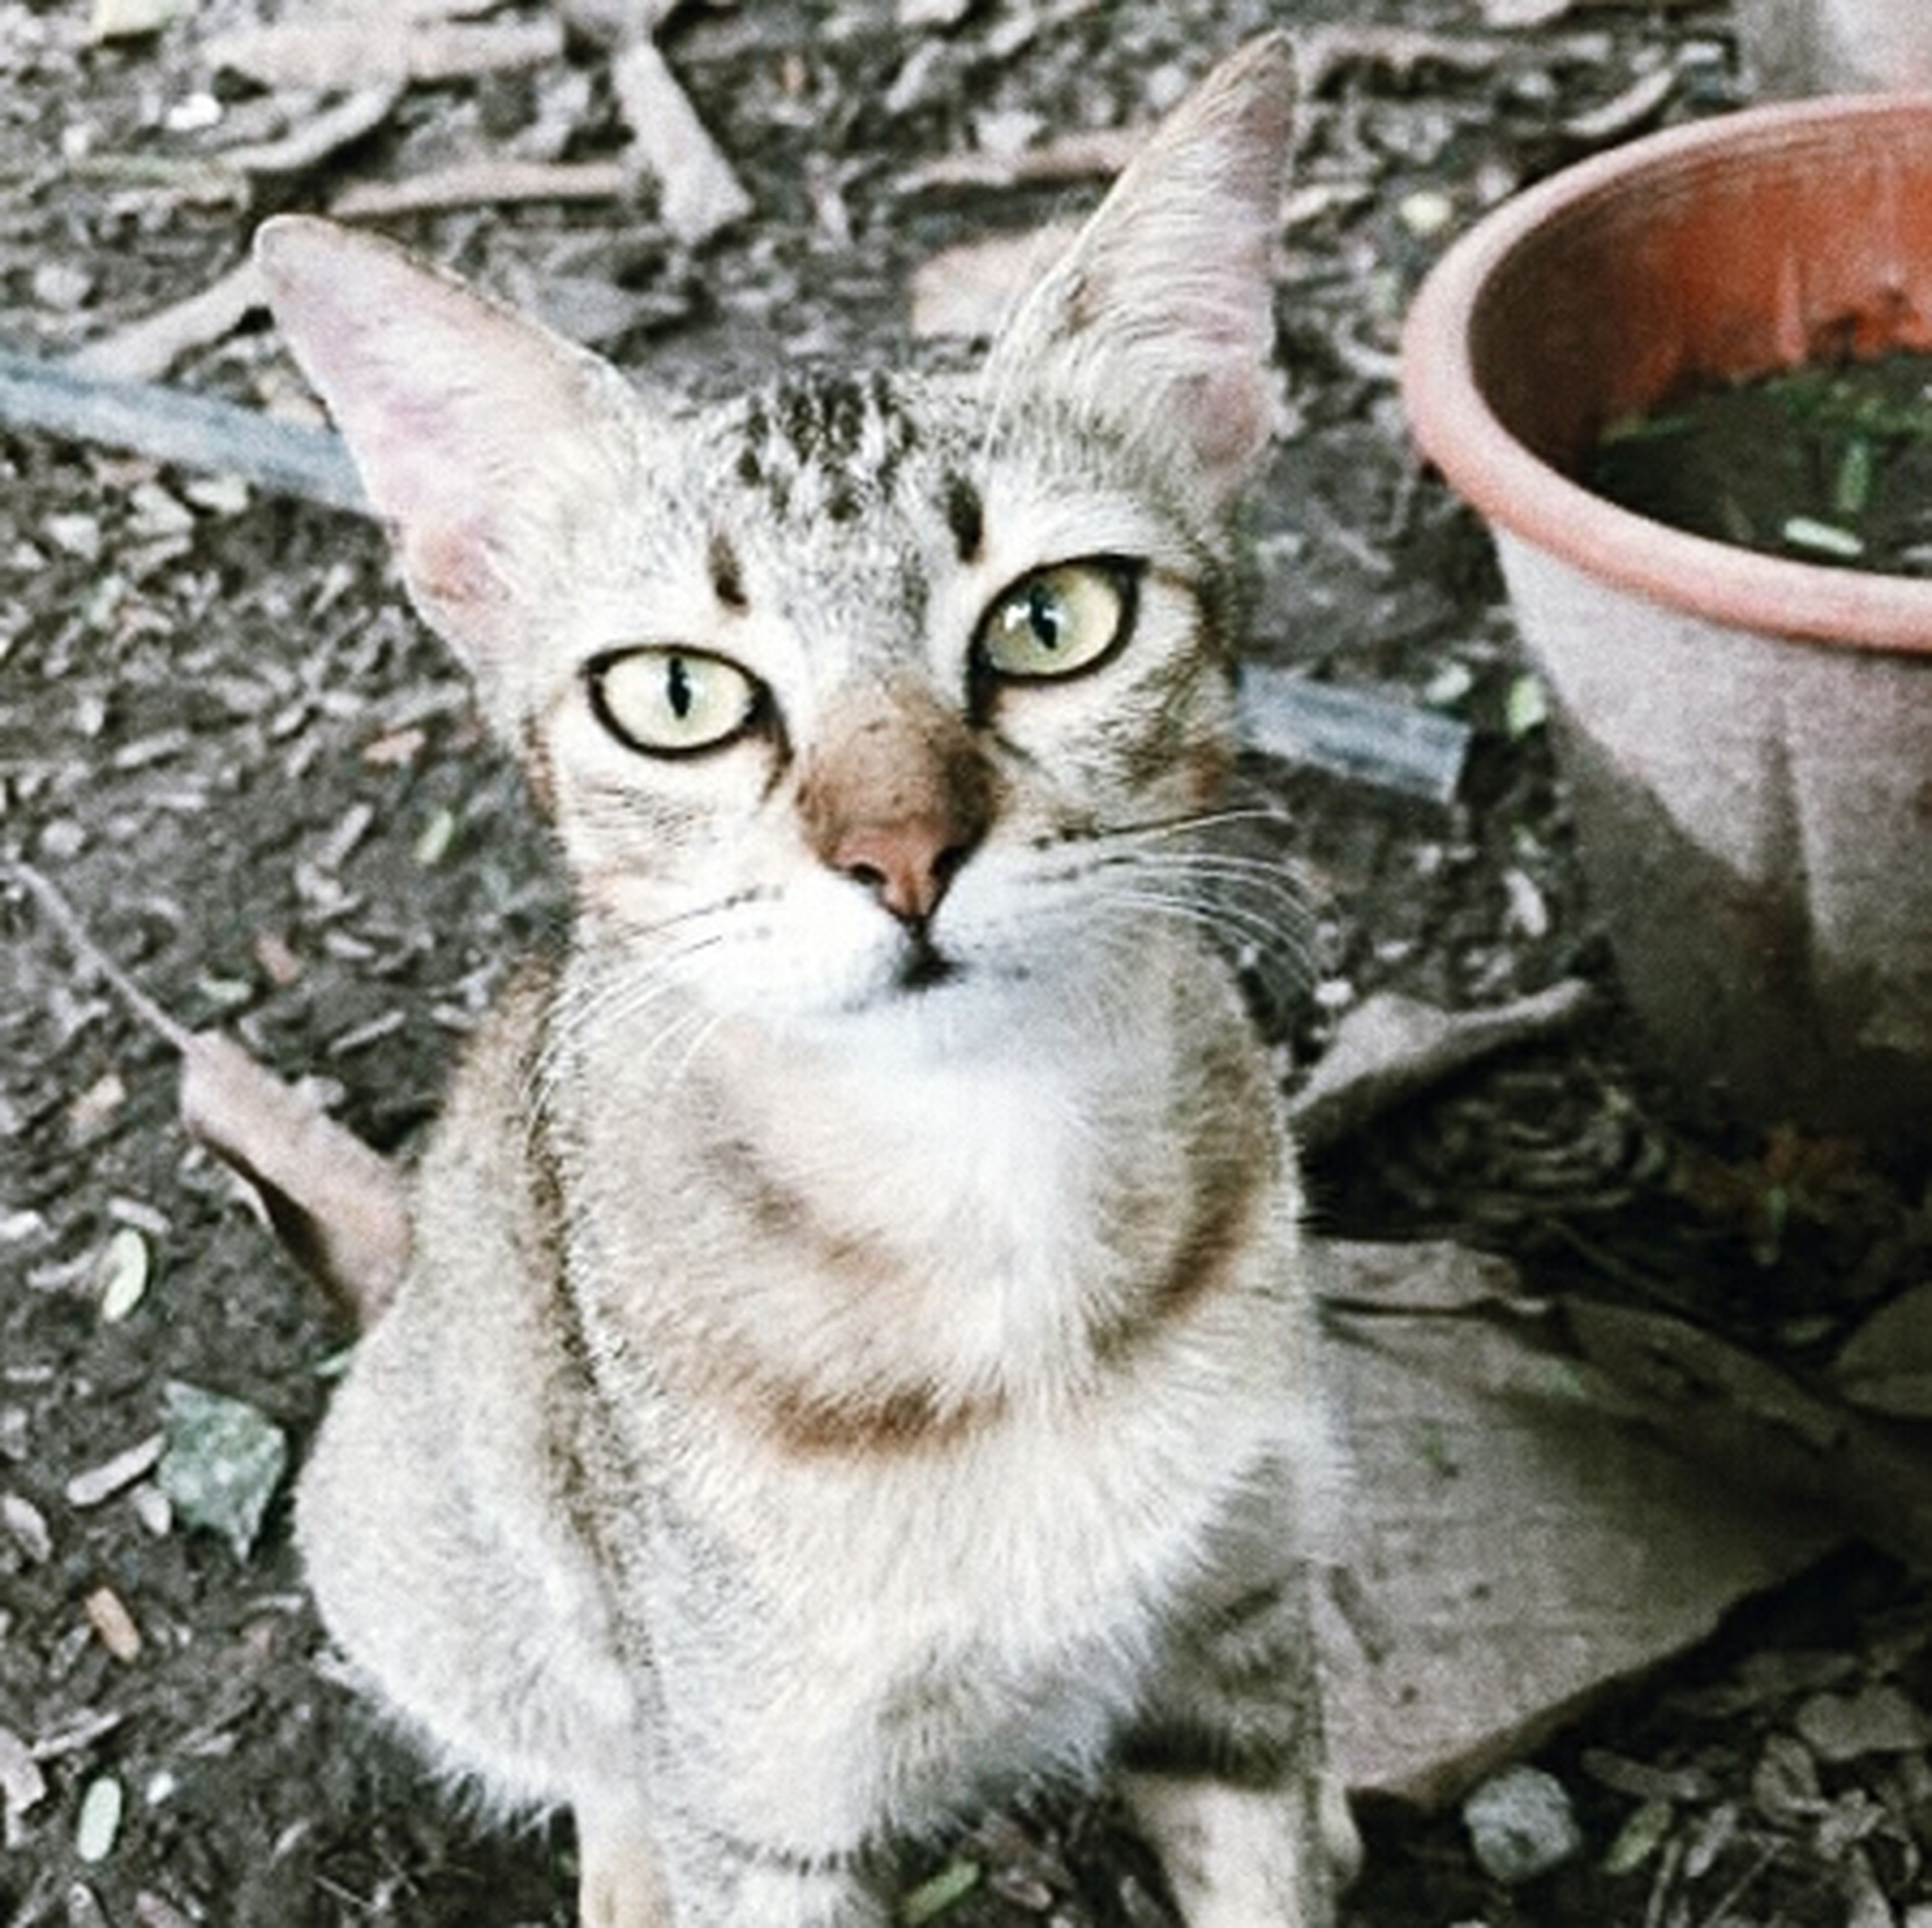 domestic cat, looking at camera, domestic animals, pets, one animal, feline, portrait, animal themes, mammal, outdoors, no people, day, close-up